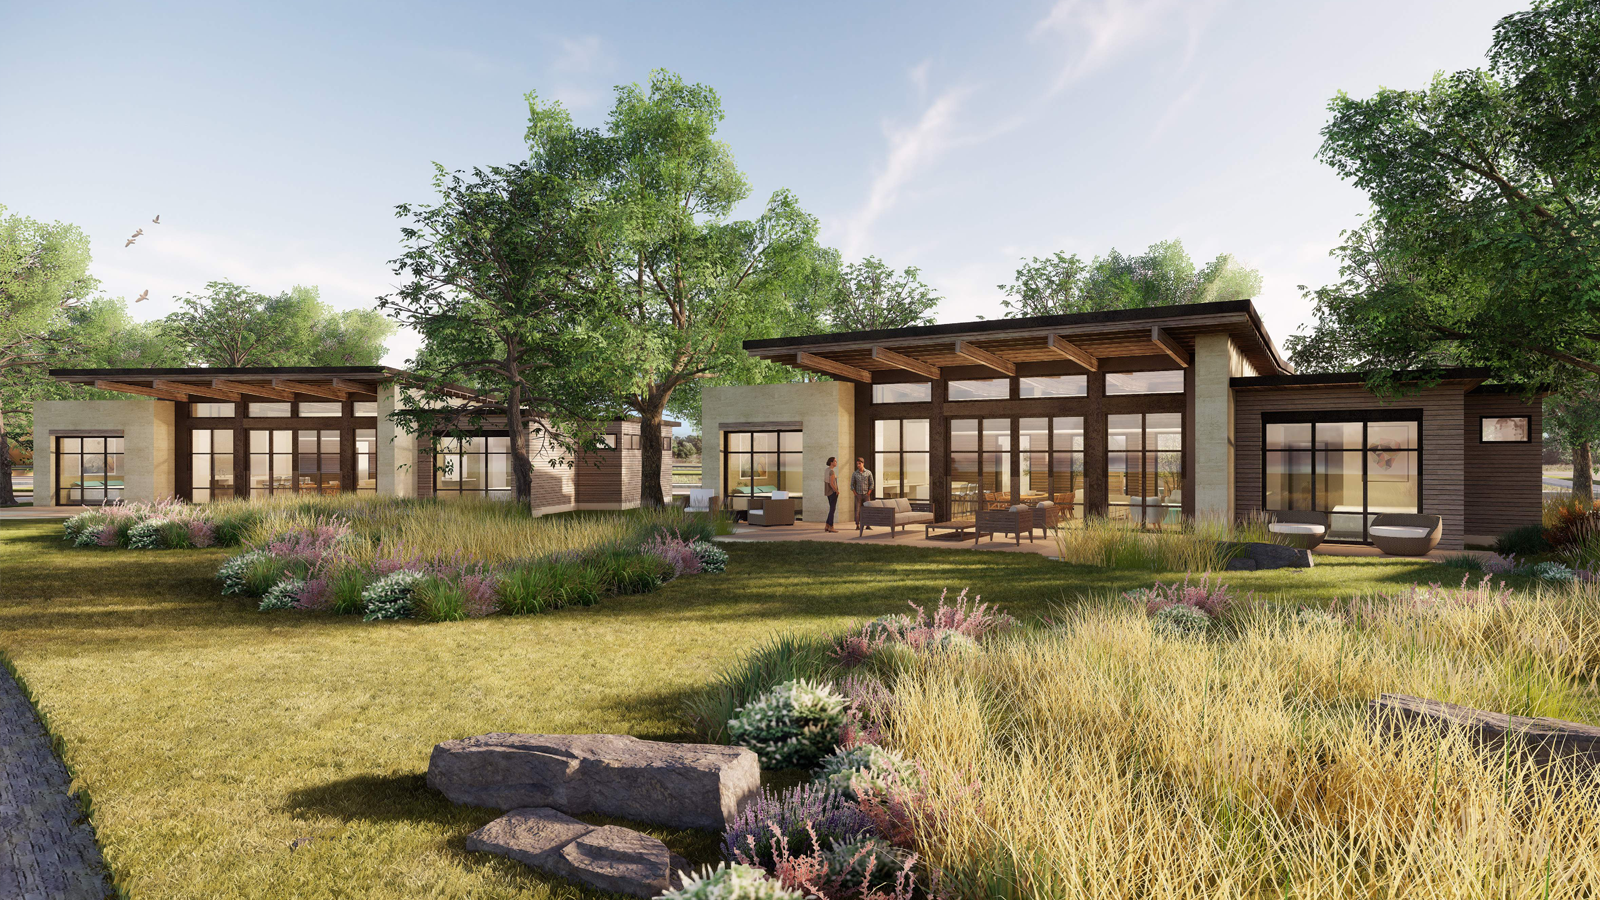 A rendering of the golf villas on property.